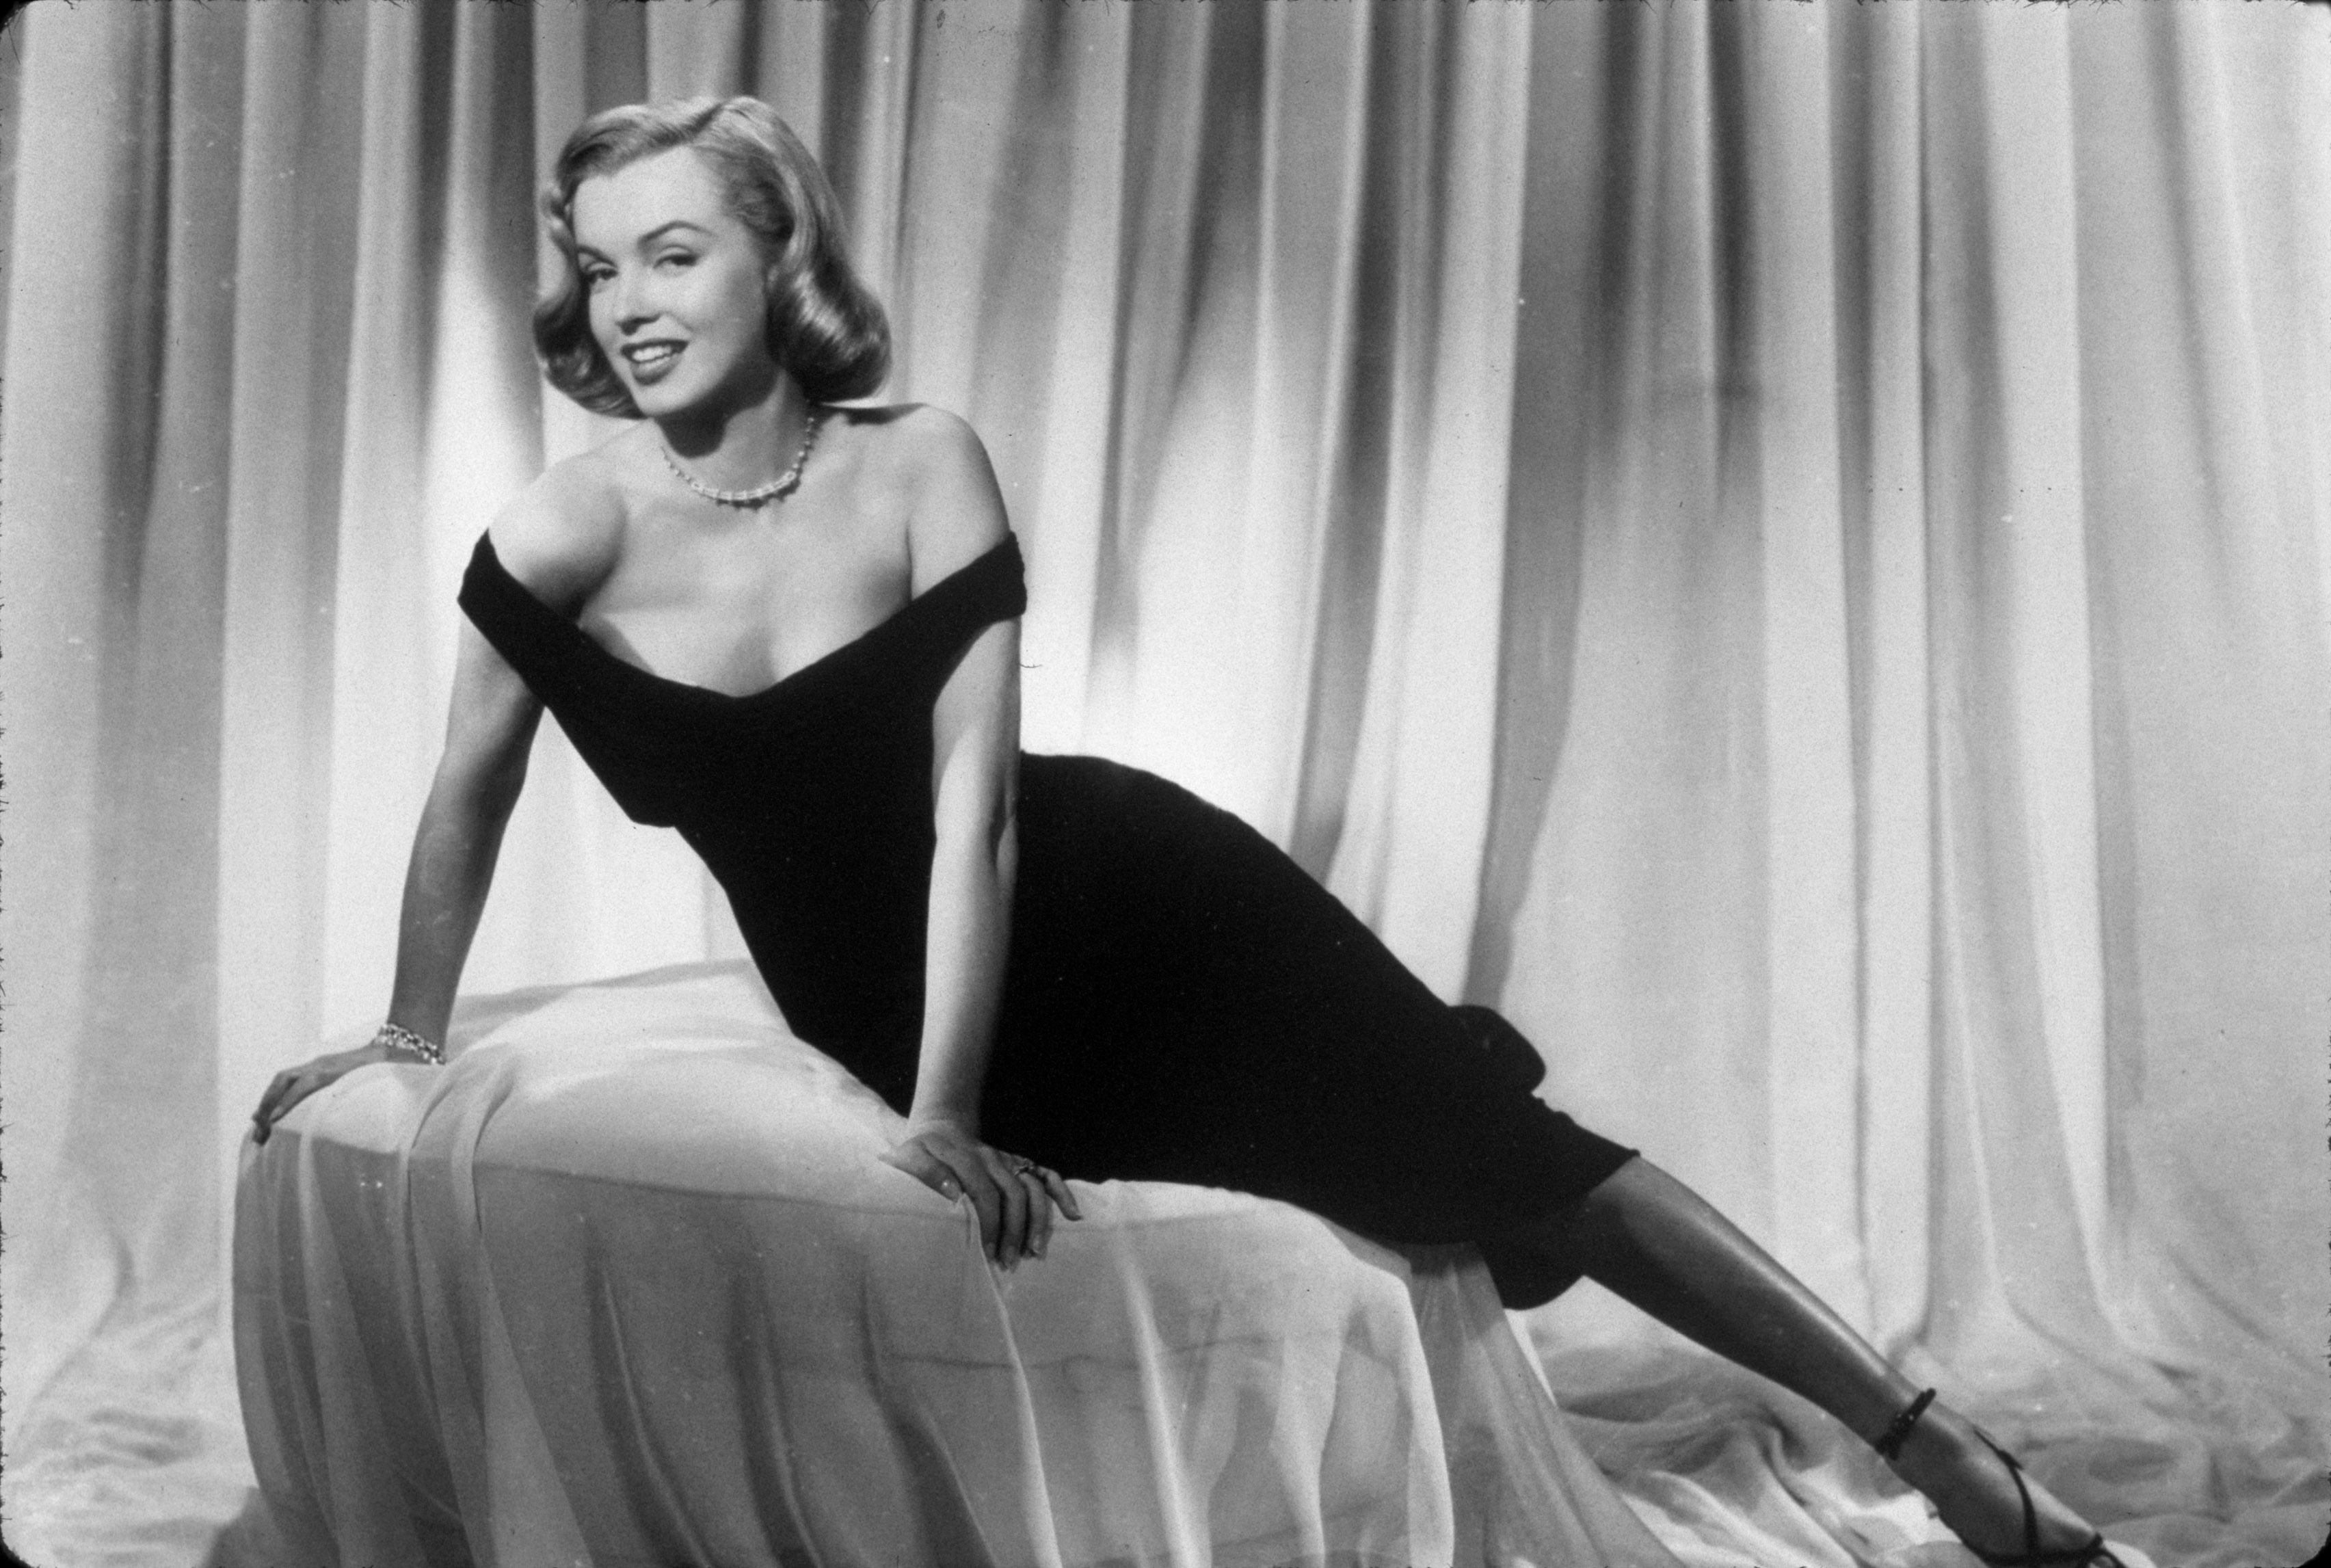 'It Was Murder!' Marilyn Monroe's Death Scene Showed Proof of 'Police Corruption'